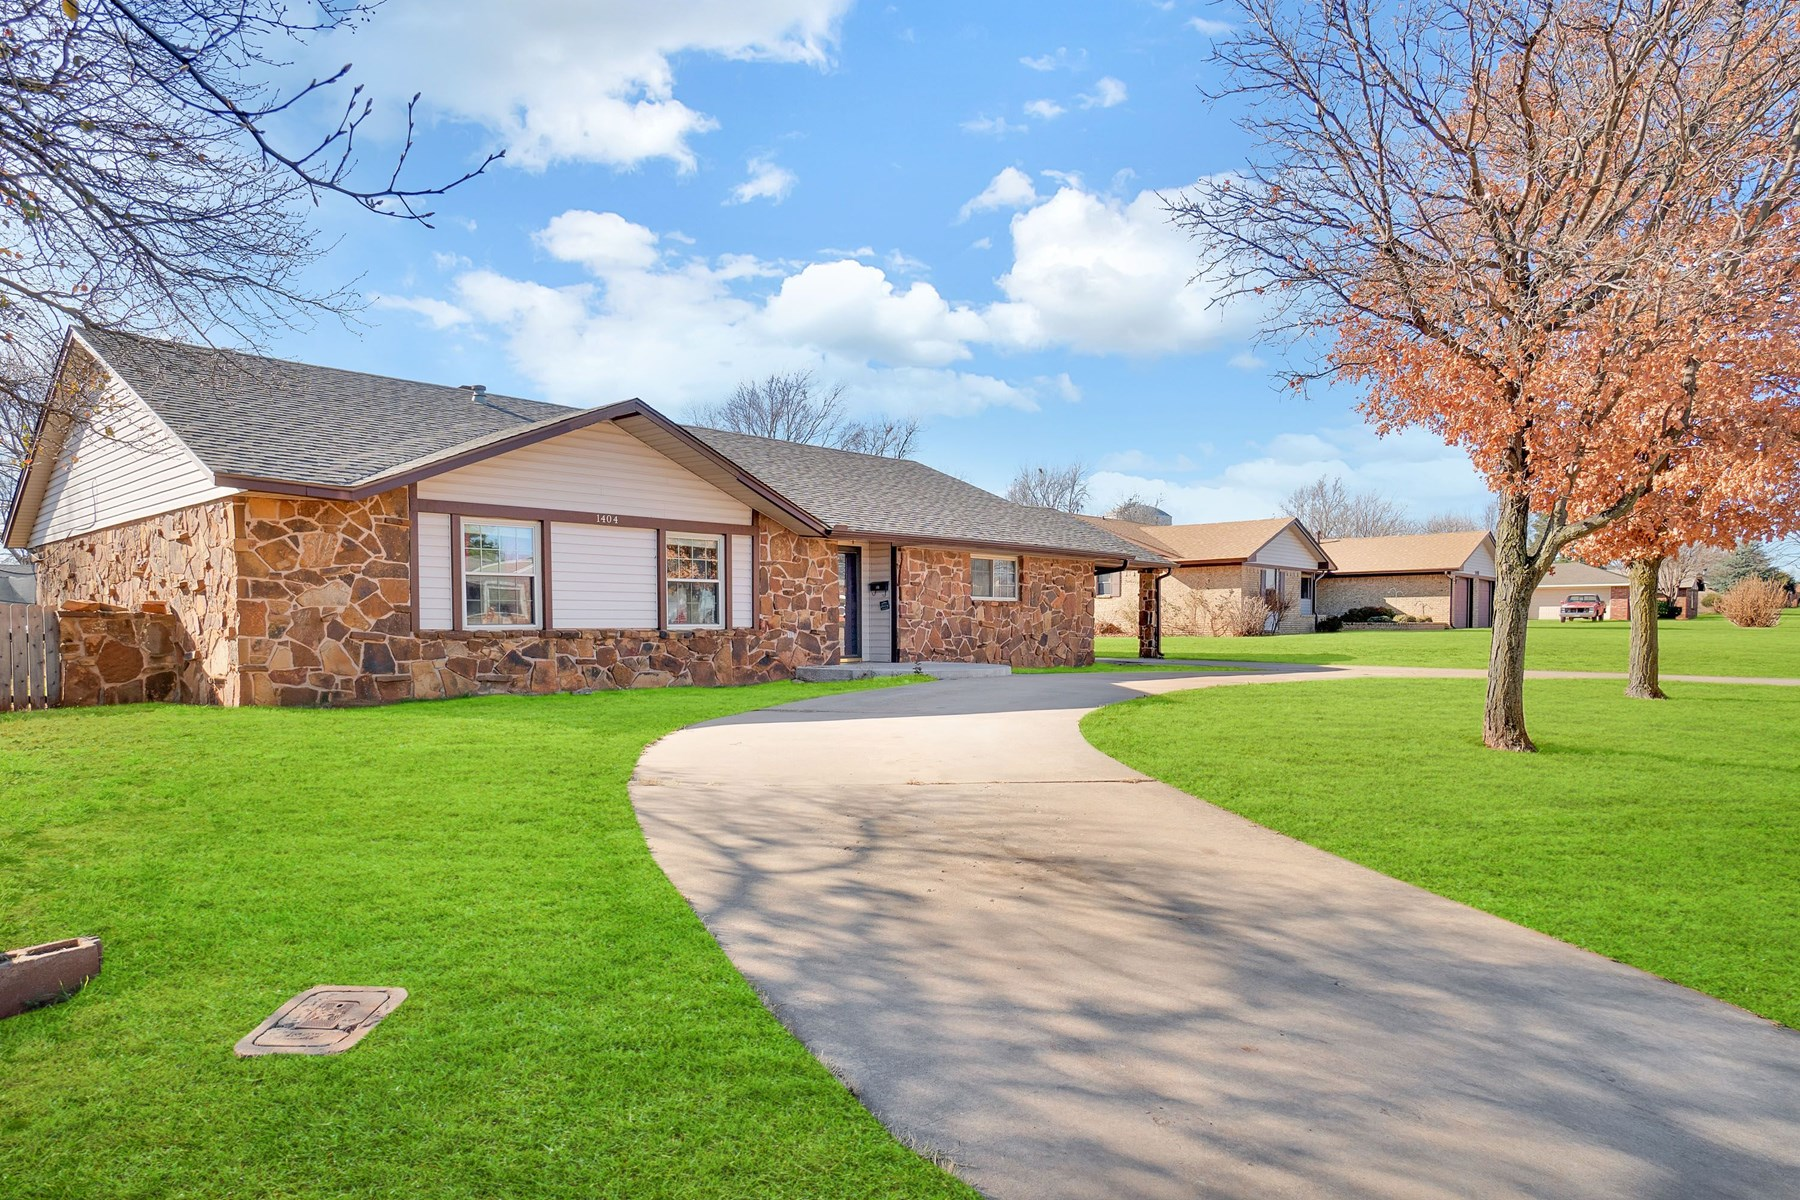 HOME FOR SALE IN ELK CITY, OK